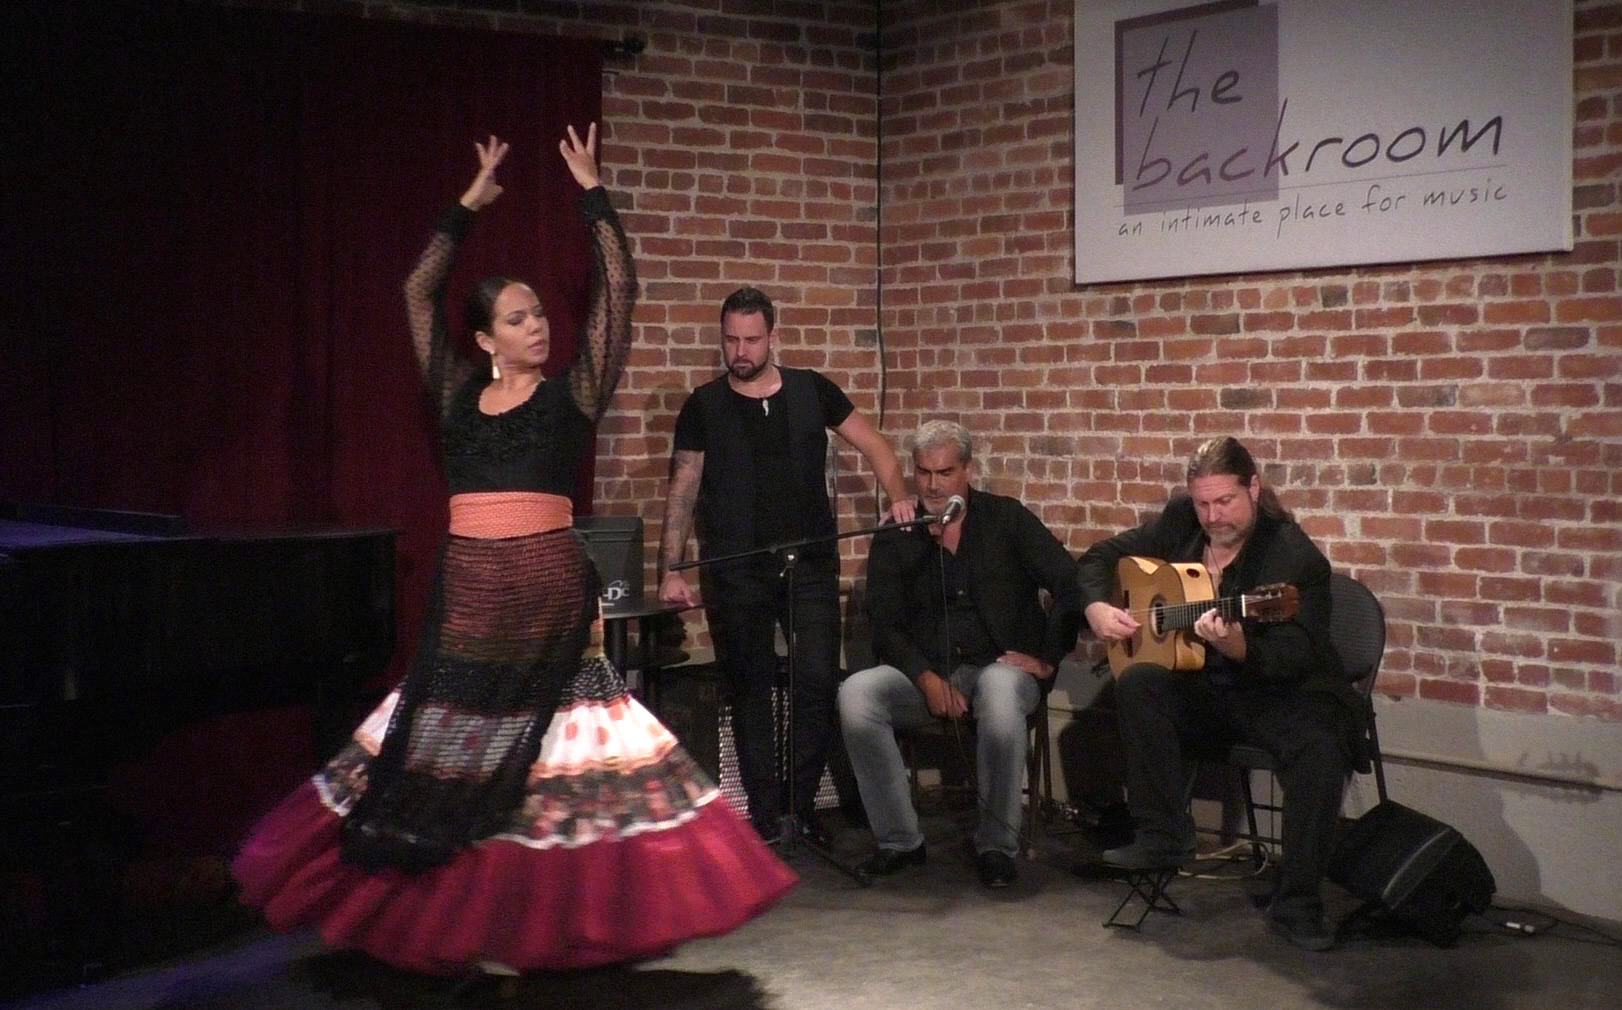 Performing at the Backroom with Jose Cortés, Jason, and Manuel. August 2016.